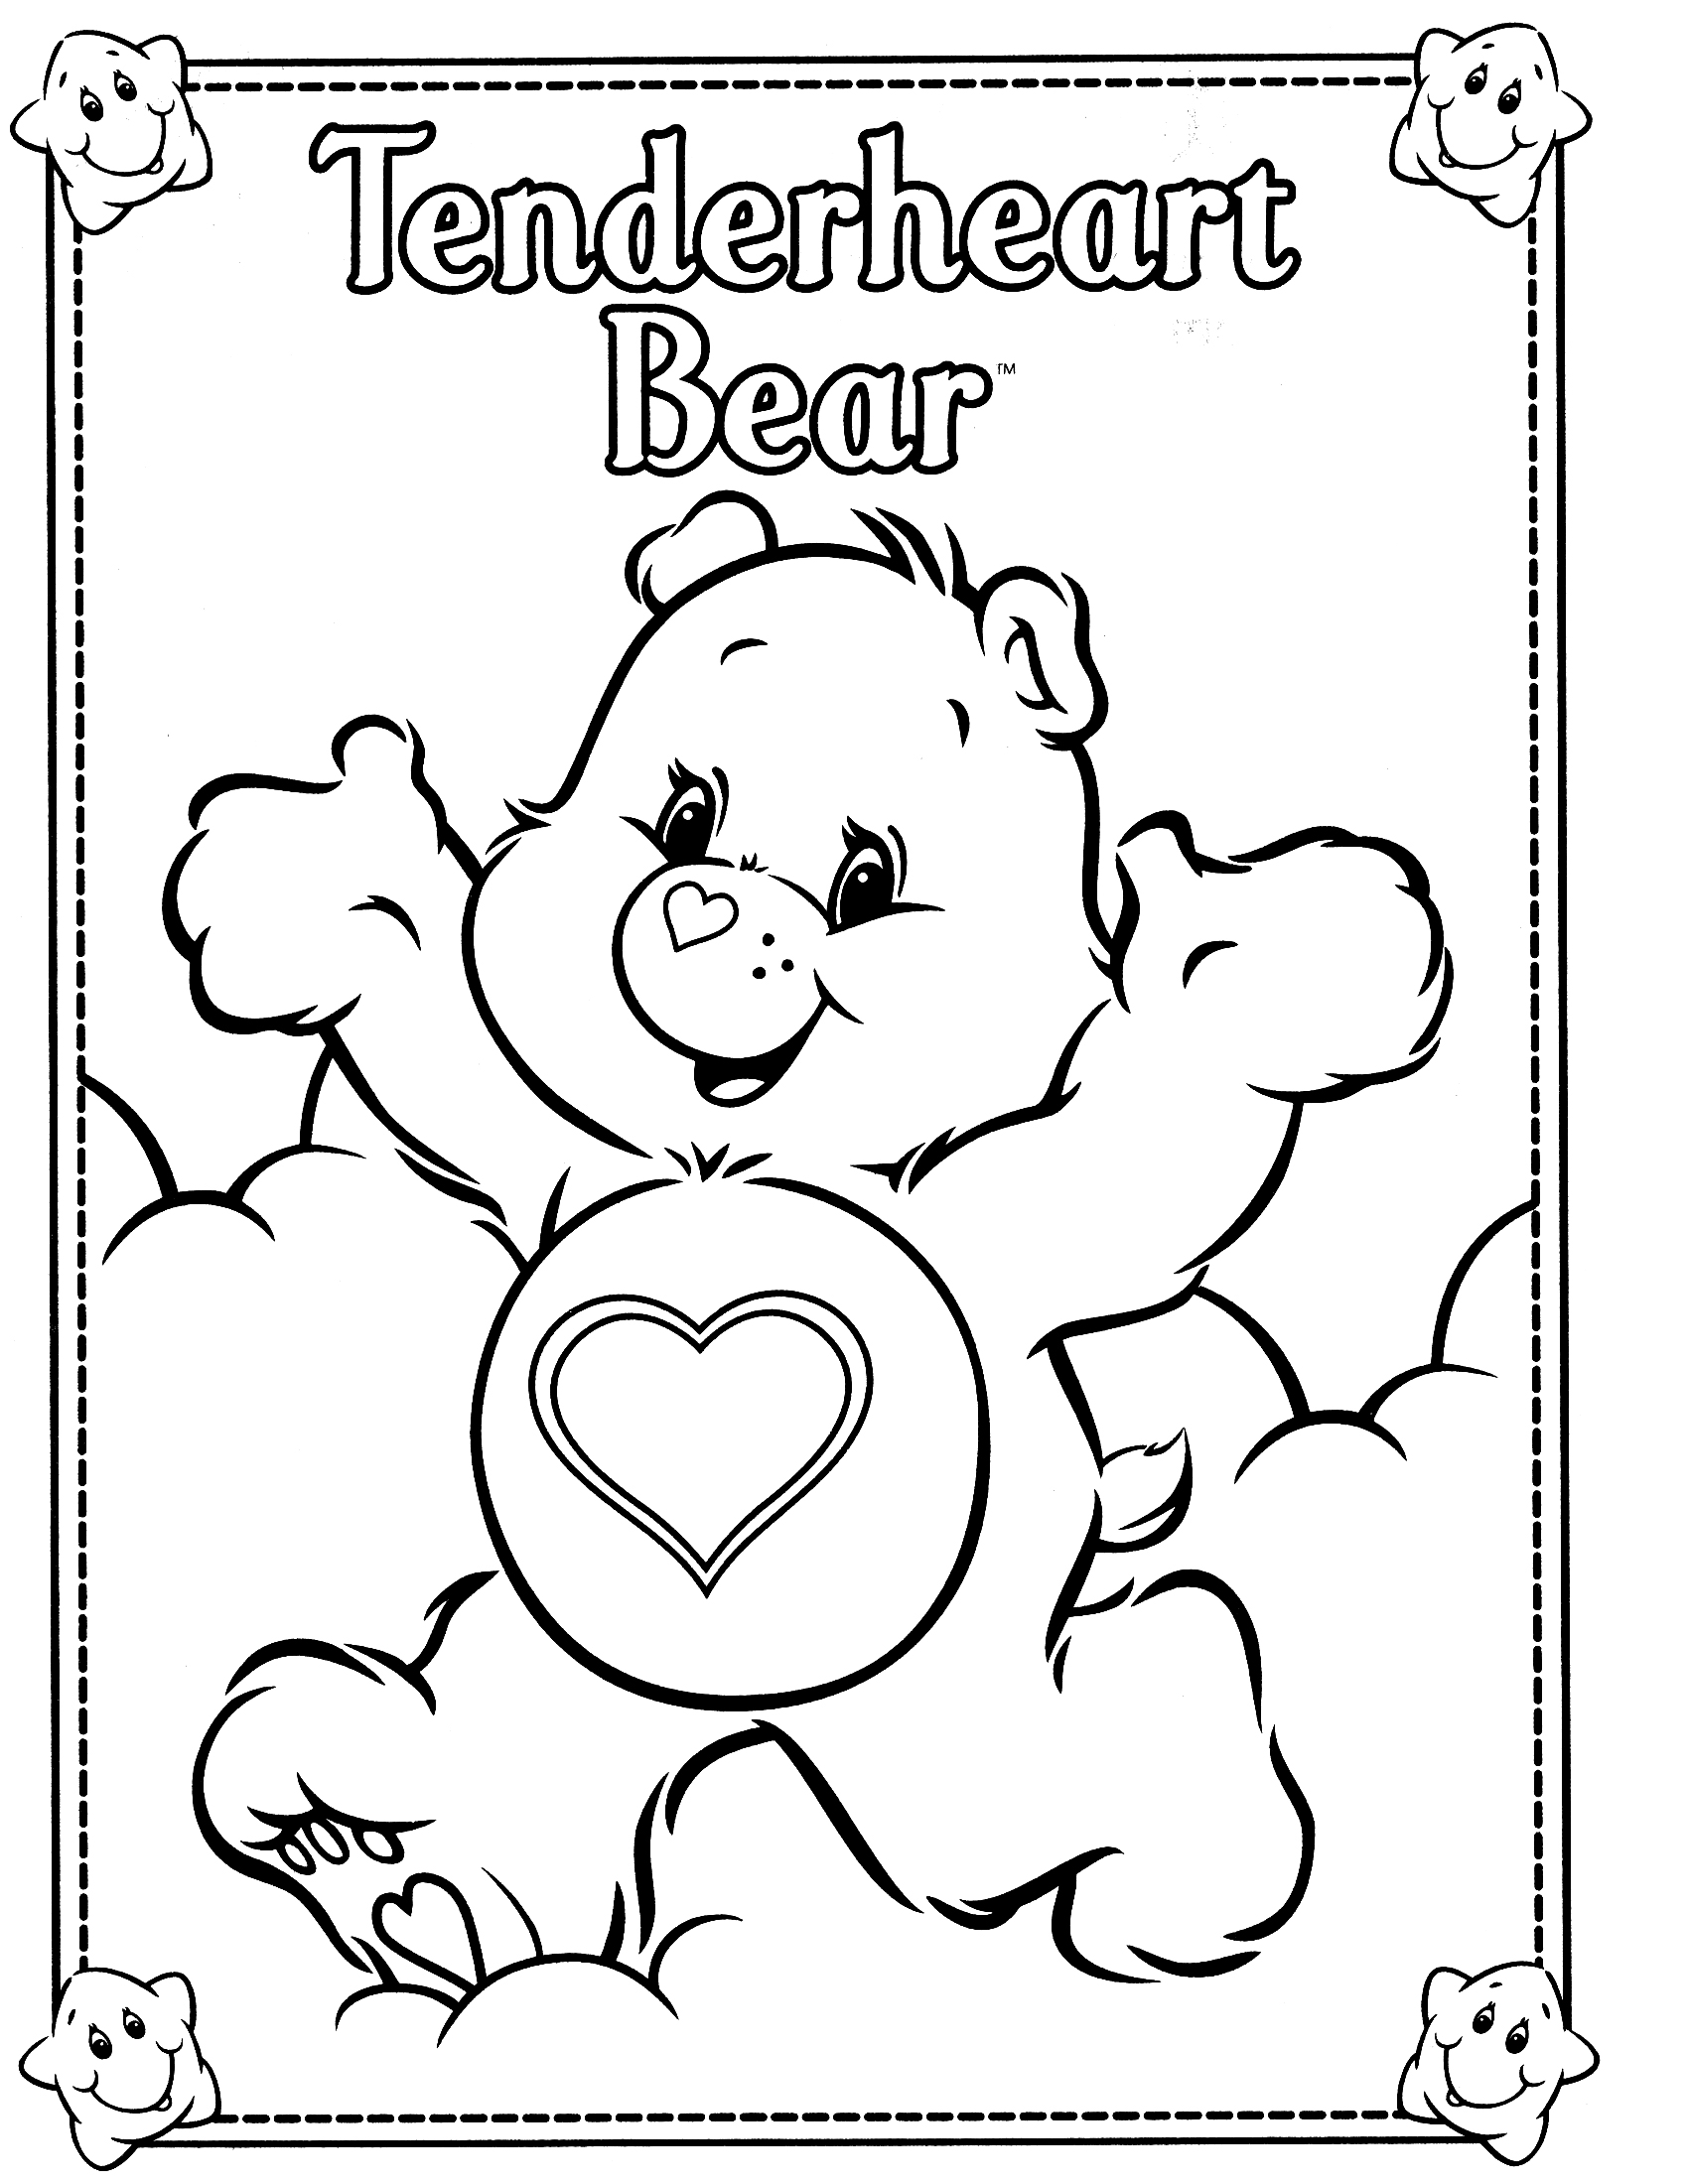 coloring pages of bears cheer bear coloring pages download and print for free of bears coloring pages